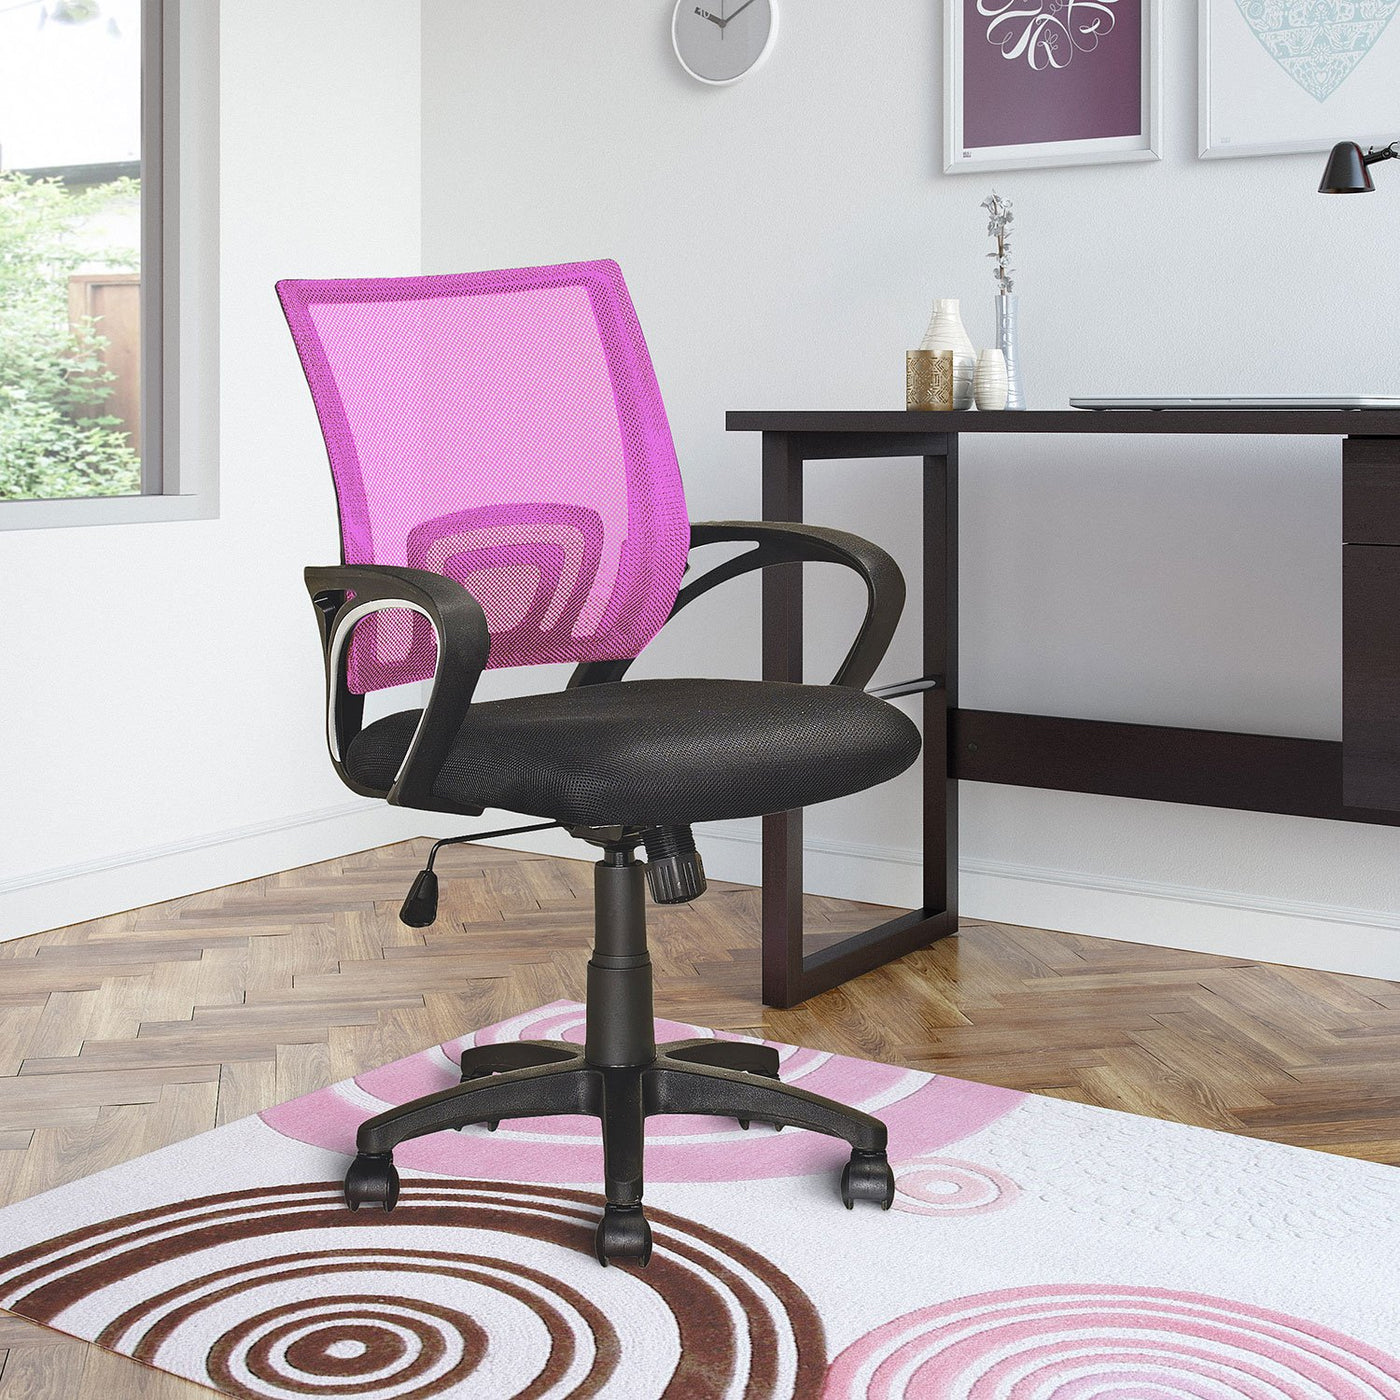 Caltra Office Chair - Pink | Furniture.ca on pink bistro chair, pink butterfly chair, pink desk, pink stackable chair, pink egg chair, pink web chair, pink office drawers, pink pod chair, pink office curtains, pink spinning chair, pink shampoo chair, pink kitchen chair, pretty pink chair, pink computer chair, pink plastic chair, pink pool chair, pink arm chair, pink office supplies and accessories, pink accent chair, pink room chair,